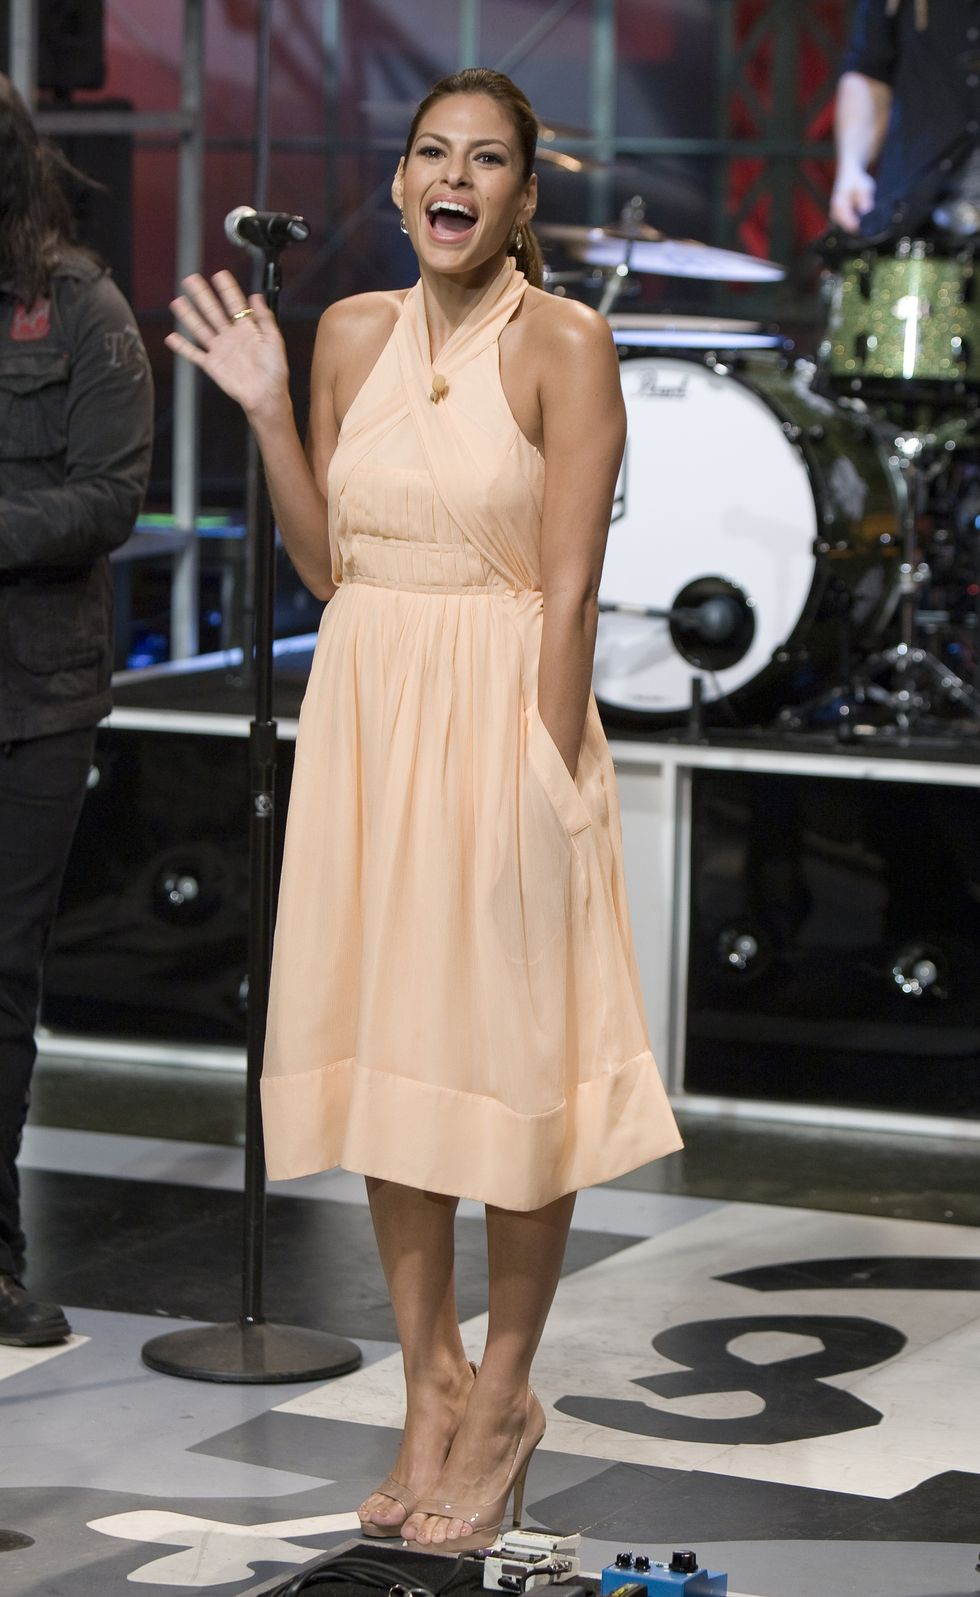 eva-mendes-at-the-tonight-show-with-jay-leno-in-los-angeles-10